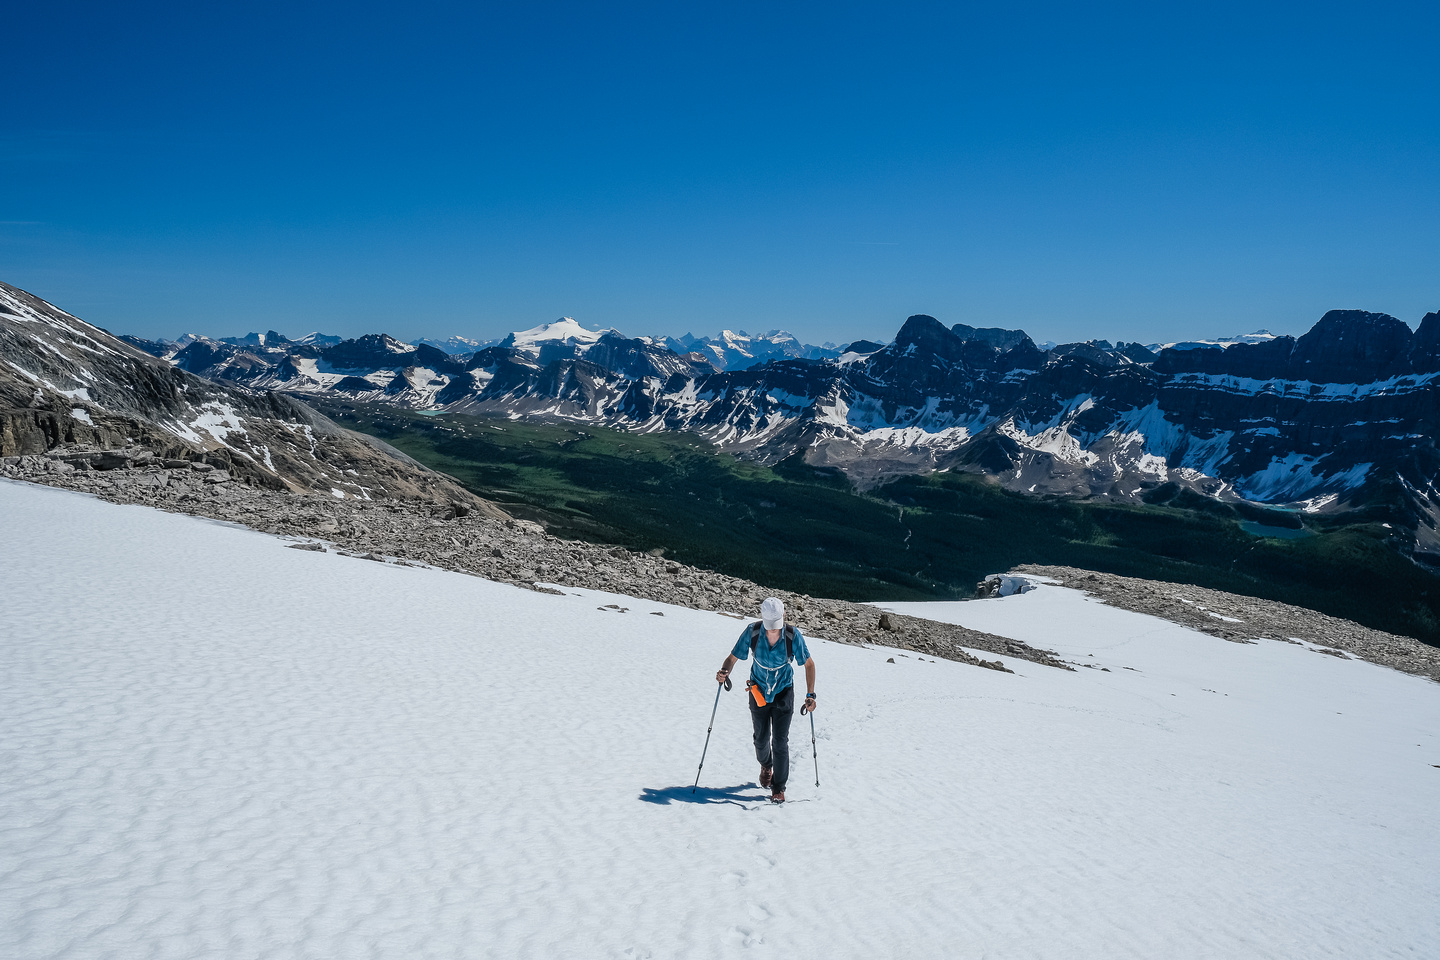 Snow on the upper slopes assisted both ascent and descent.